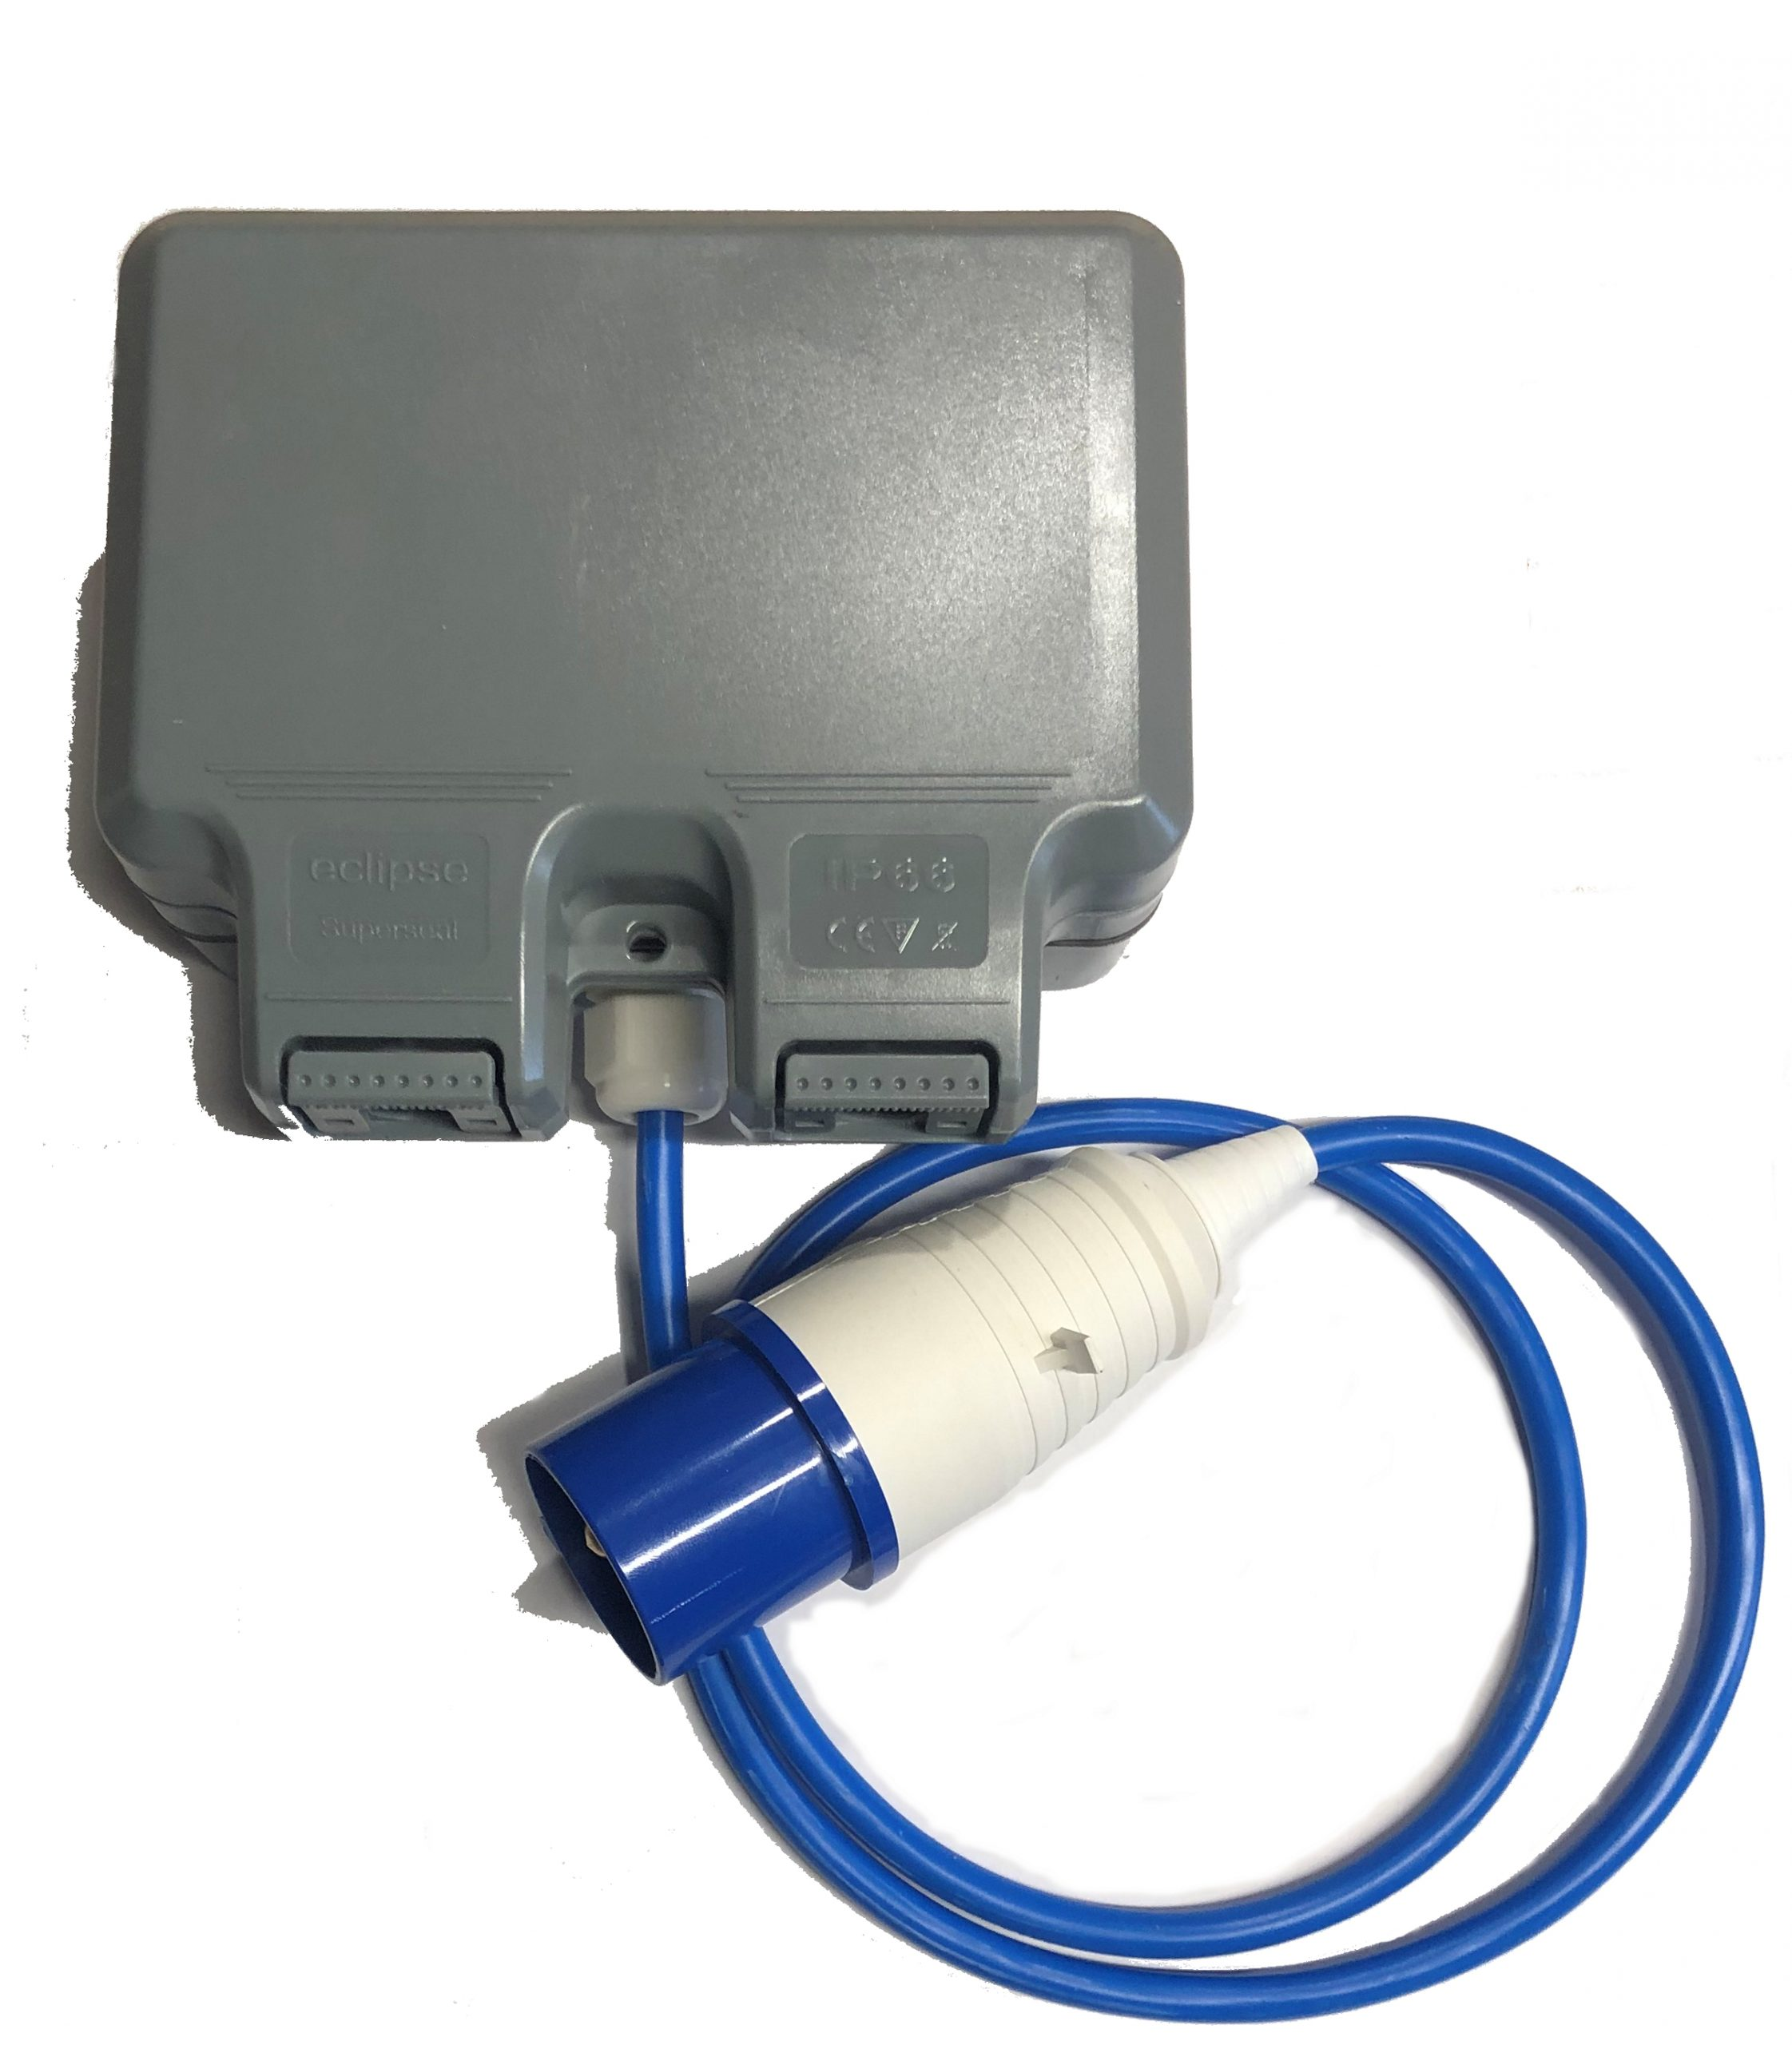 Camping/Caravan outdoor garden extension lead socket box IP65 Rated with 16amp Plug